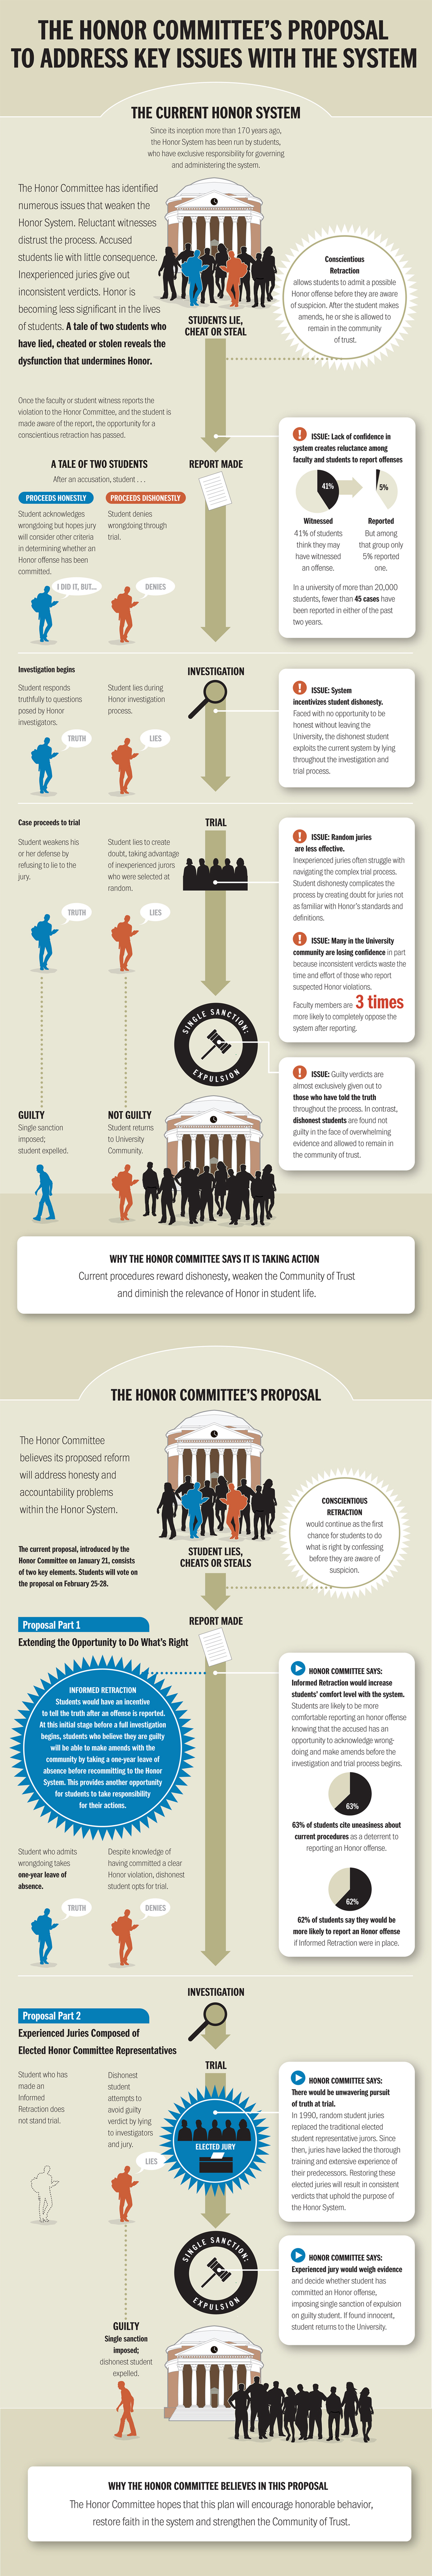 infographic - the honor committee's proposal to address problems within the system